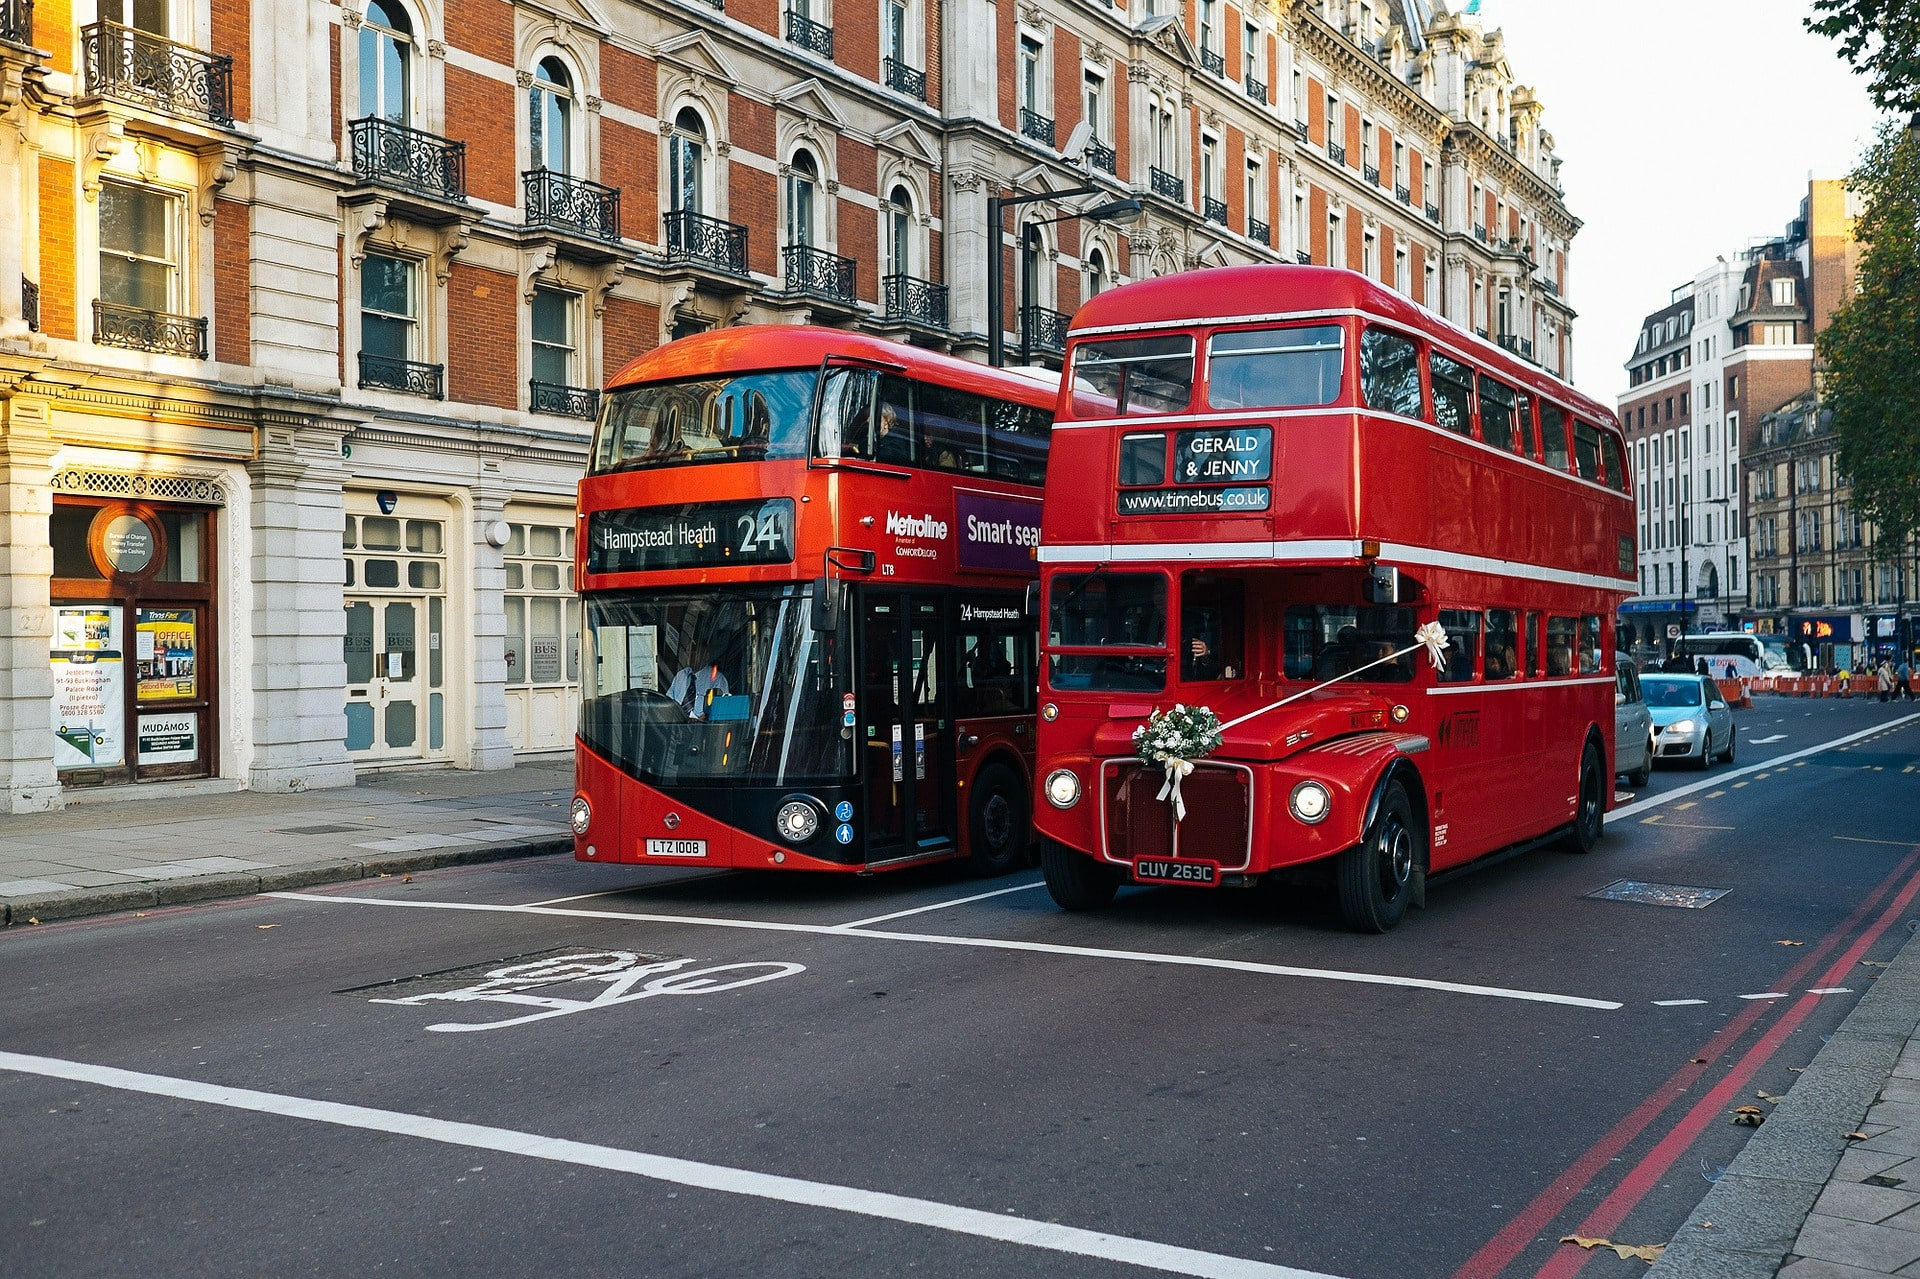 A frequently asked question about London is how to get around. You'll have plenty of options